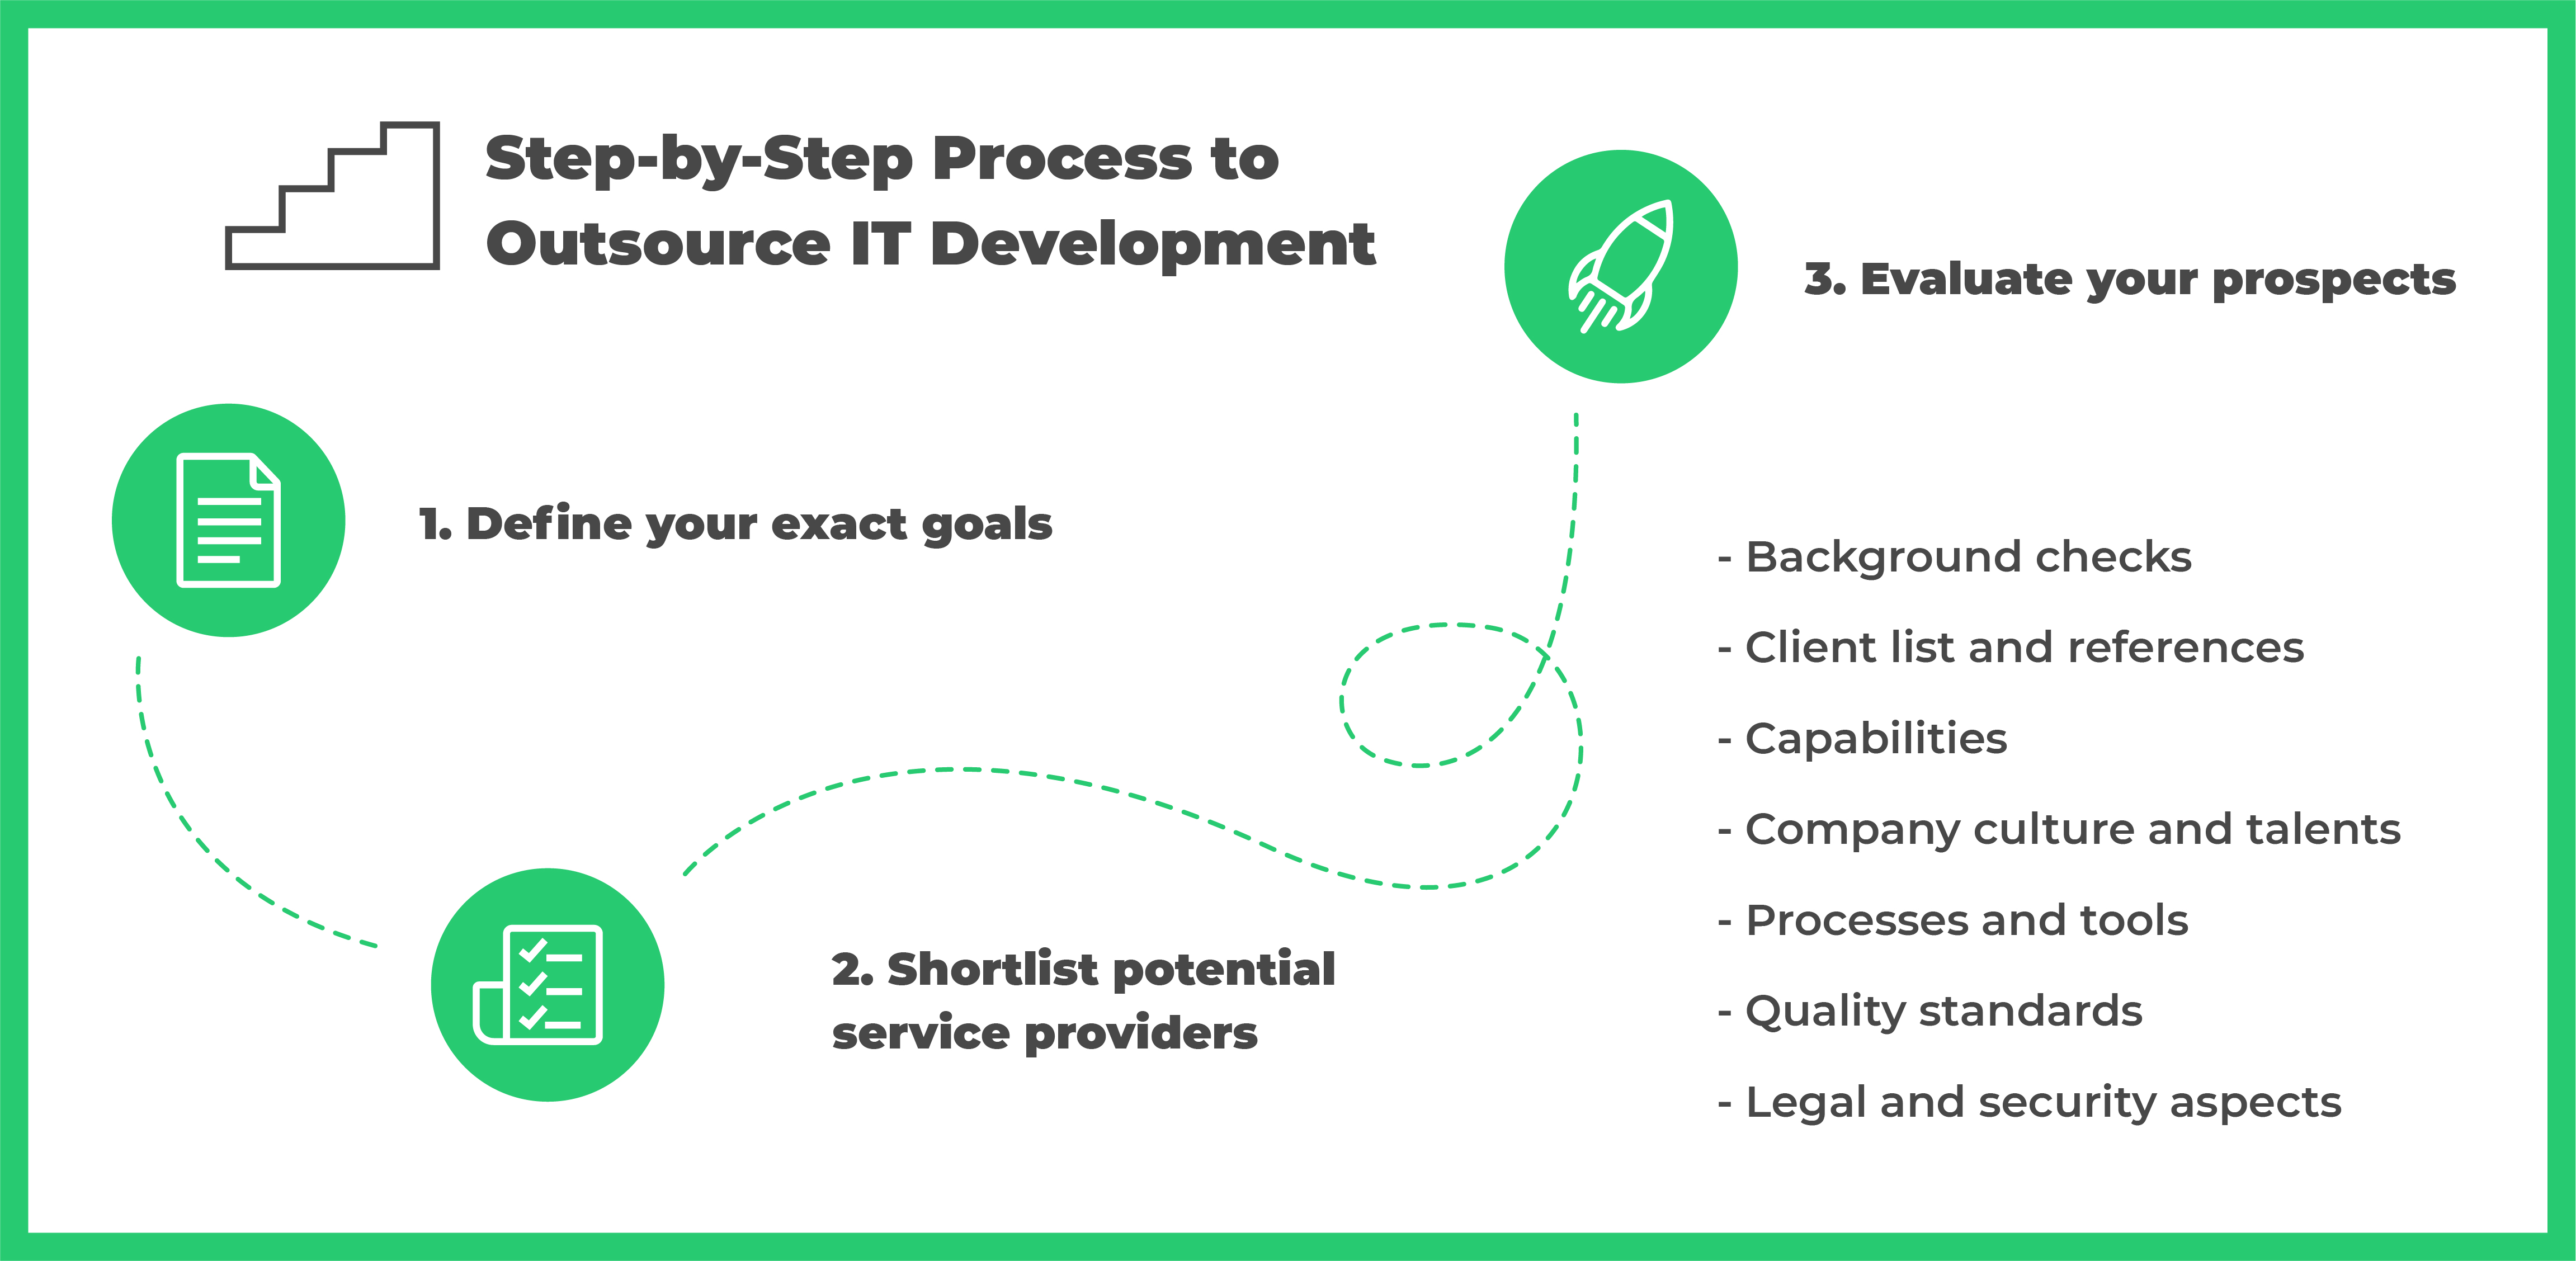 Ukraine IT Outsourcing: 3-Step Process